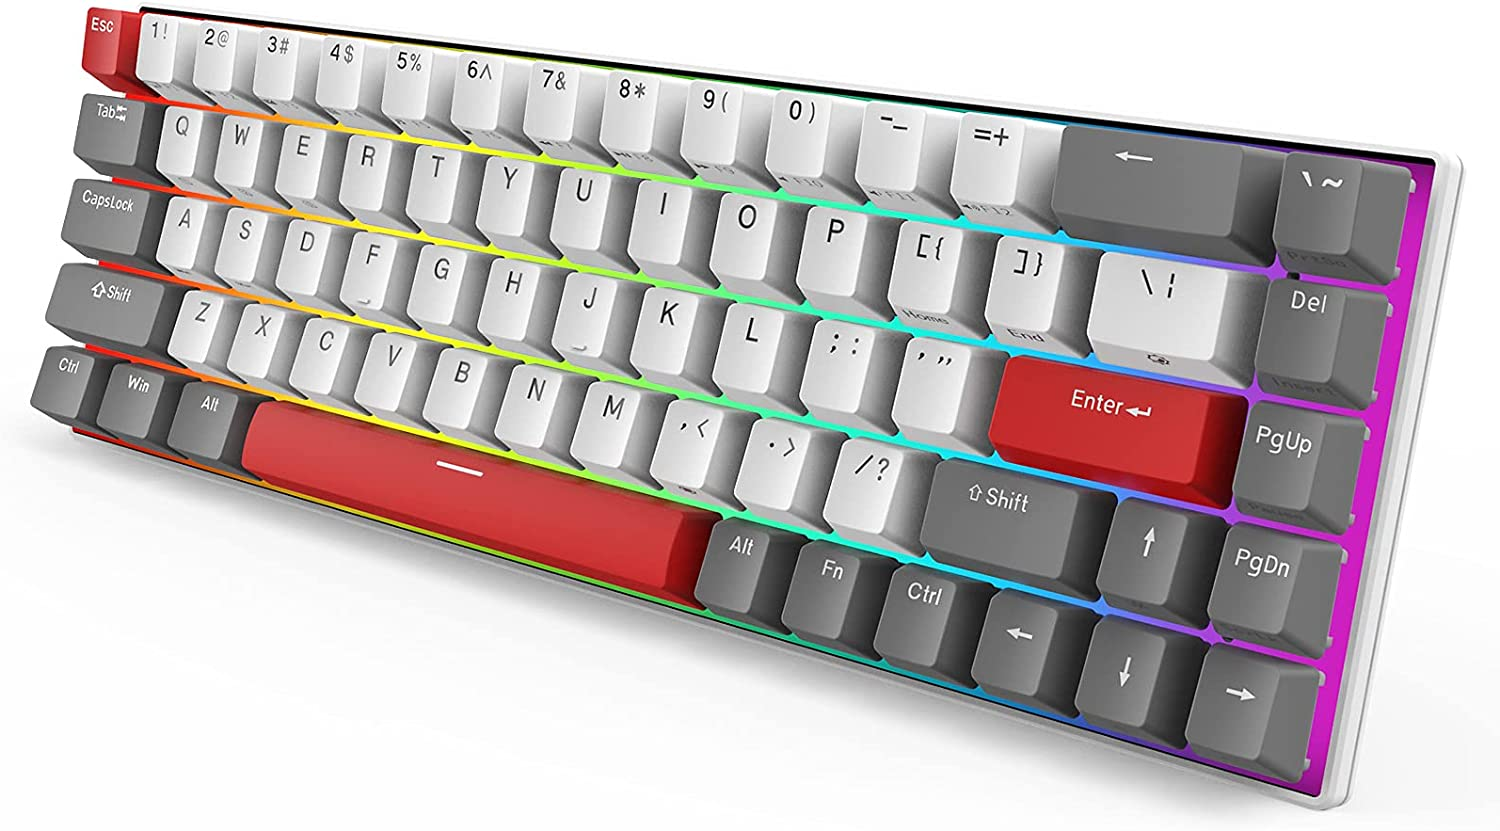 Royal Kludge G68 Classical Red 65% Mechanical Keyboard